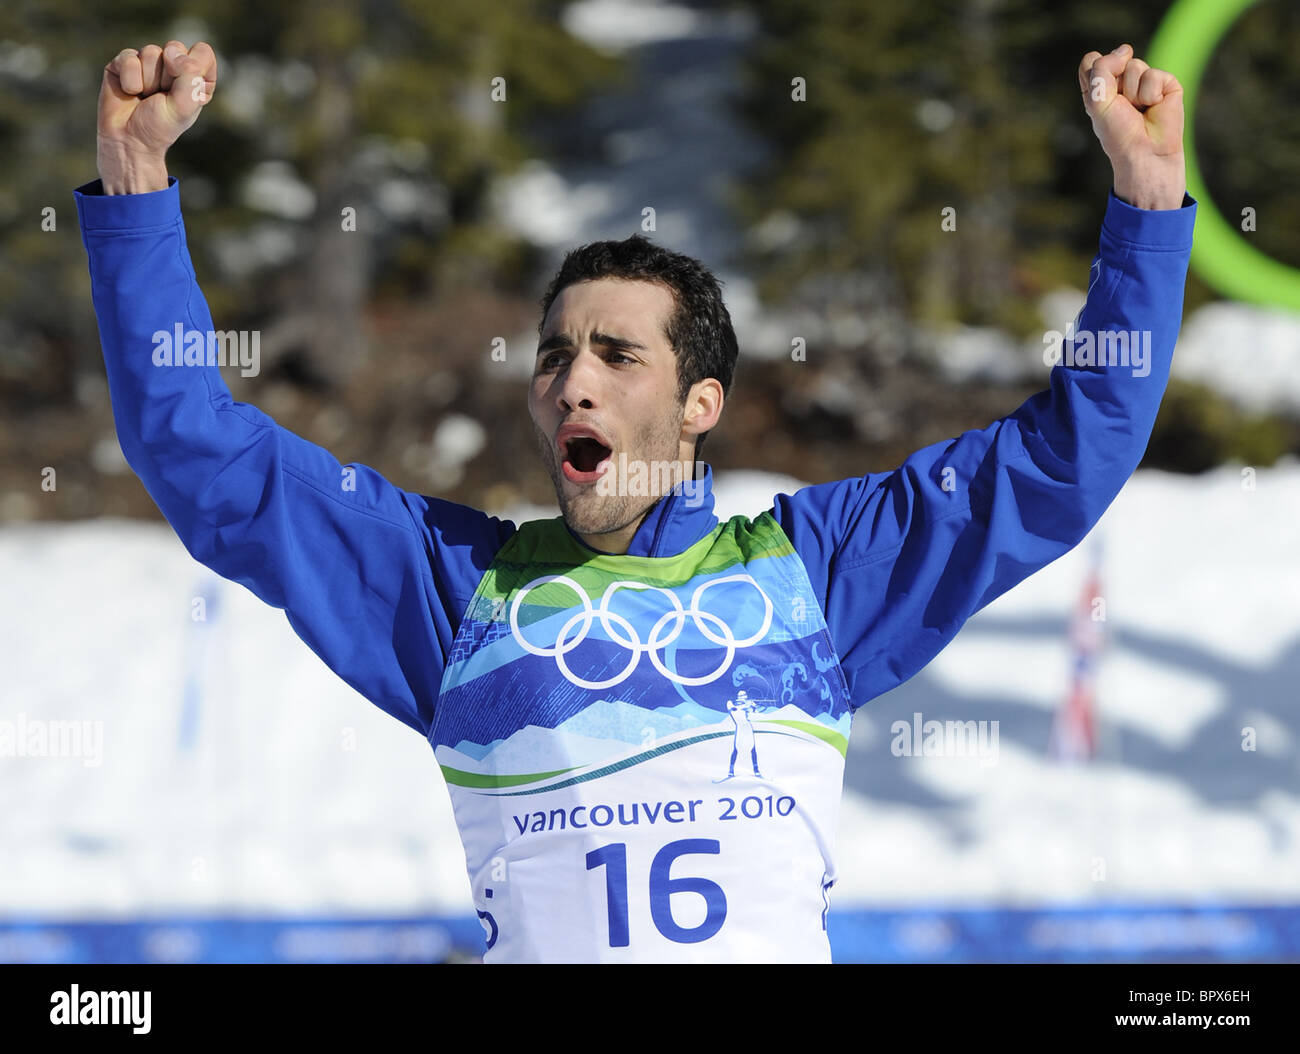 Biathlon: Russia's Evgeny Ustyugov grabs mass start gold - Stock Image